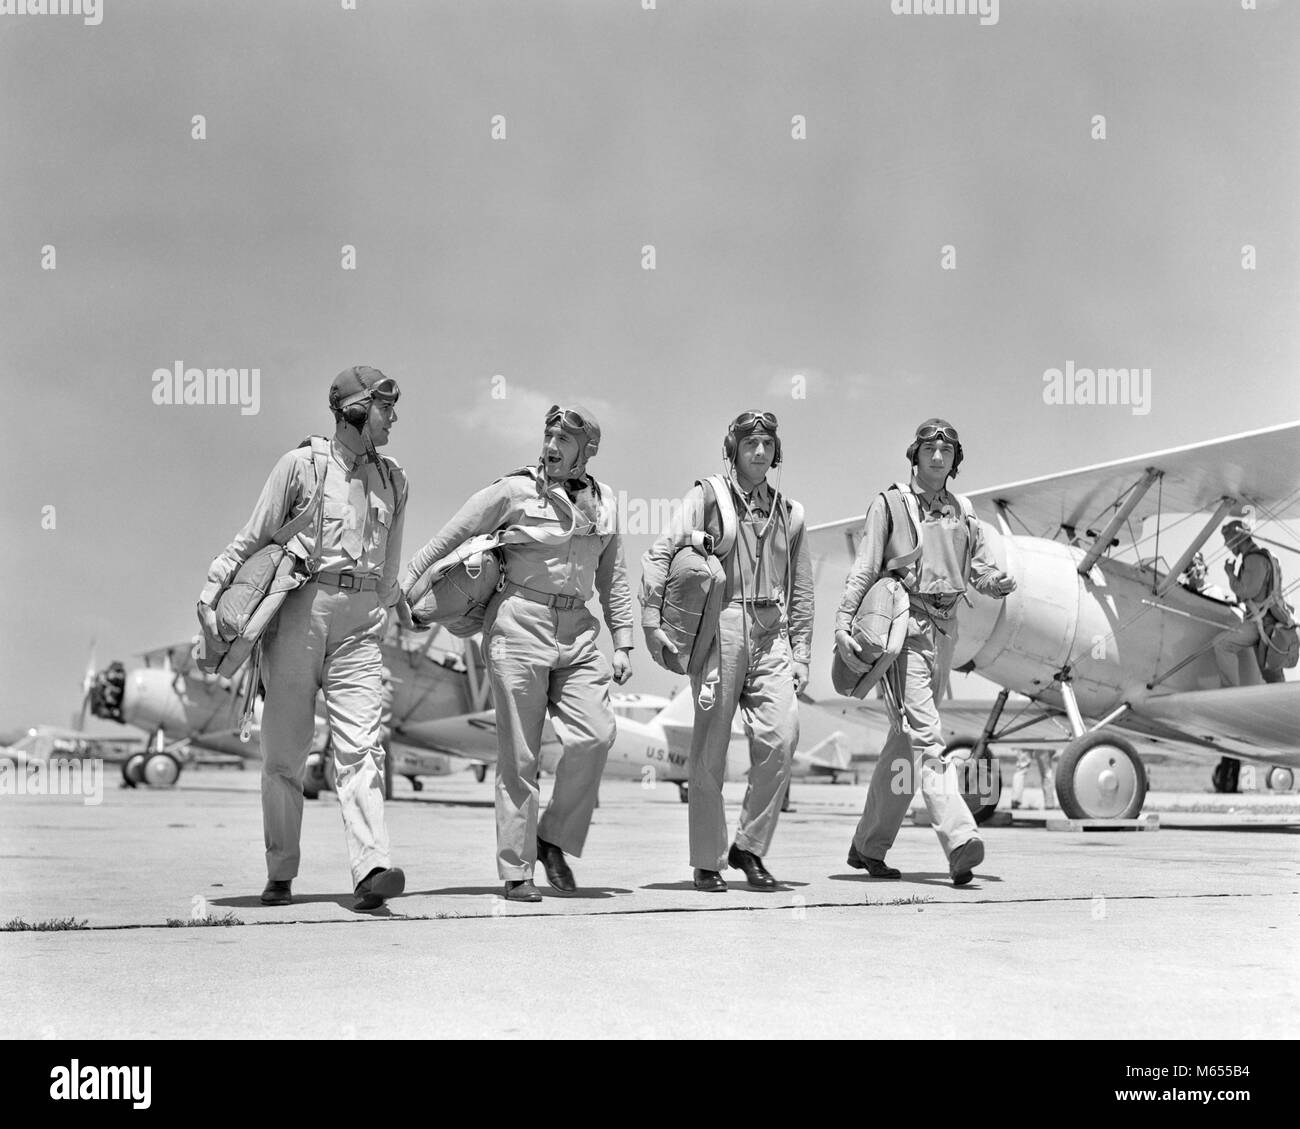 1940S FOUR U.S. NAVY PILOTS WALKING TOGETHER ON TARMAC RETURNING FROM AIR MANEUVERS AT THE PHILADELPHIA NAVY YARD - Stock Image